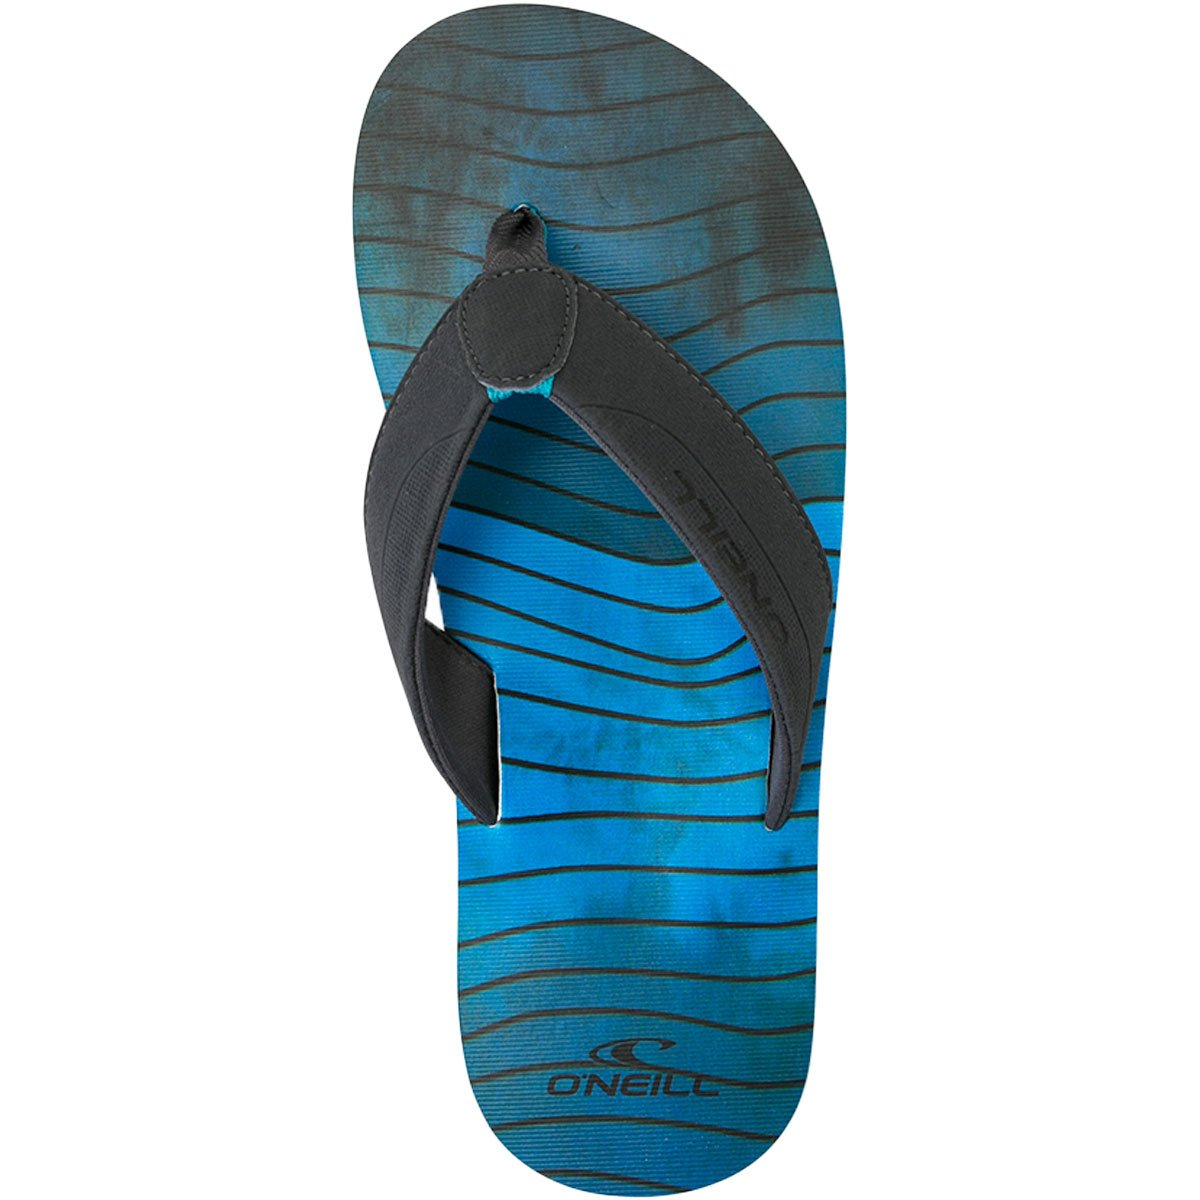 f9c6bde84fe Hurley Mens One   Only Printed Sandal  1541020495-371030  -  15.05